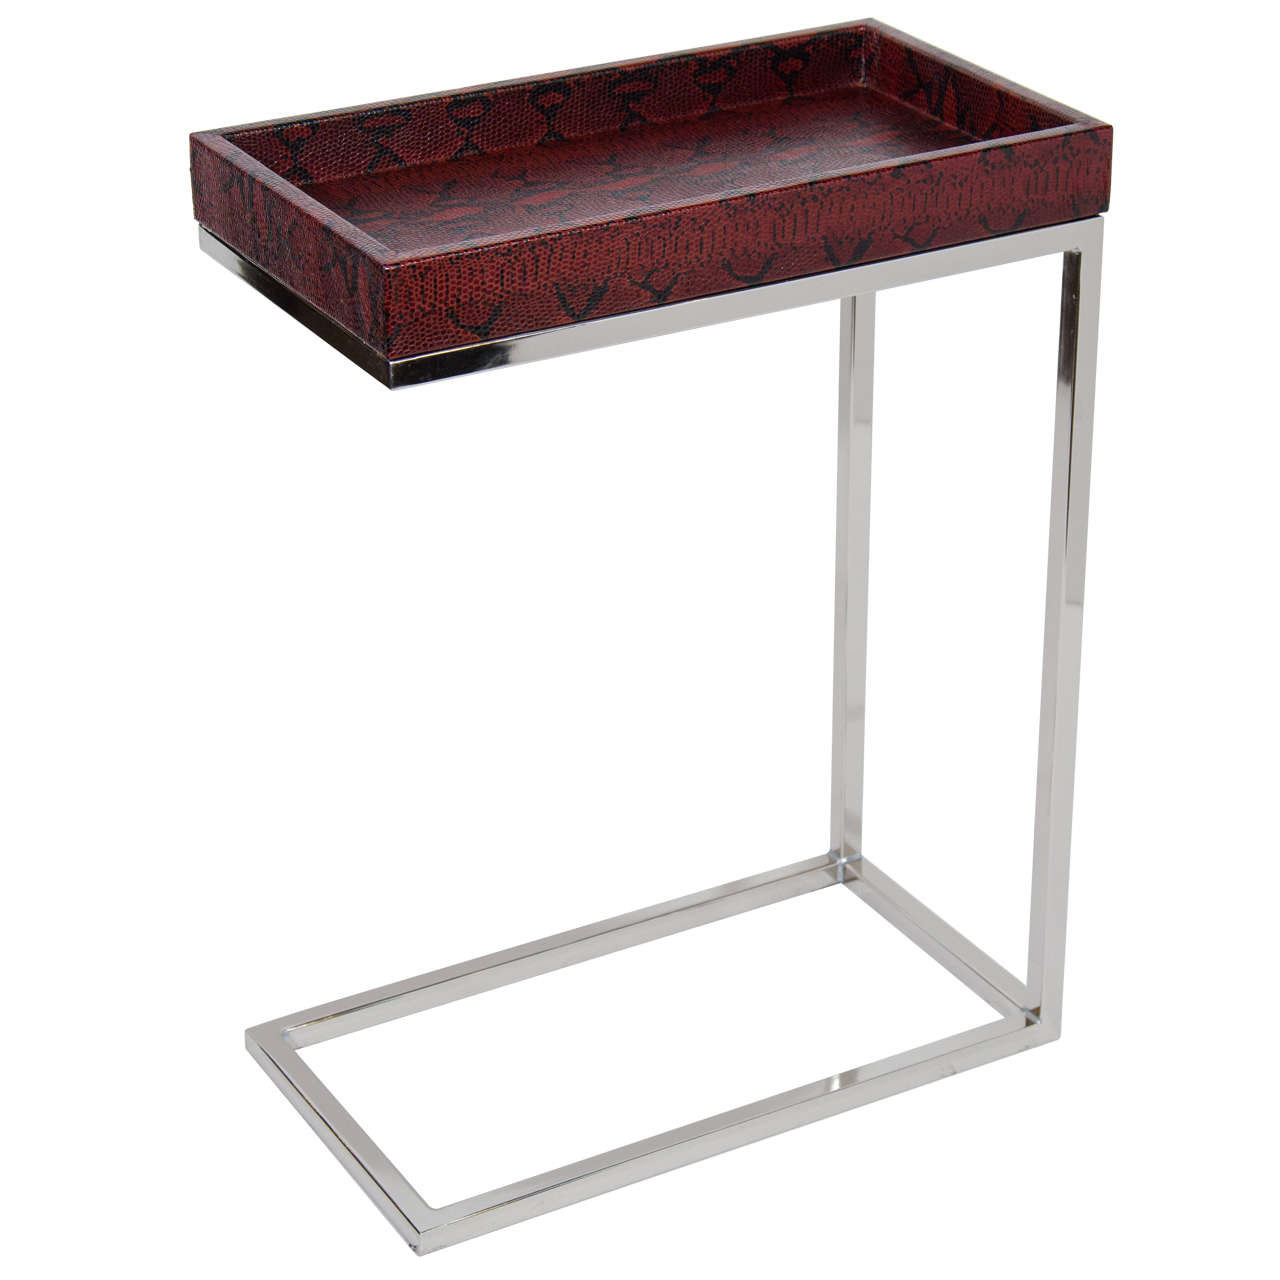 small side table ideas decorate your modern living room midcityeast amusing design the silver legs with brown wooden tops narrow for bedroom areas accent long desk round glass